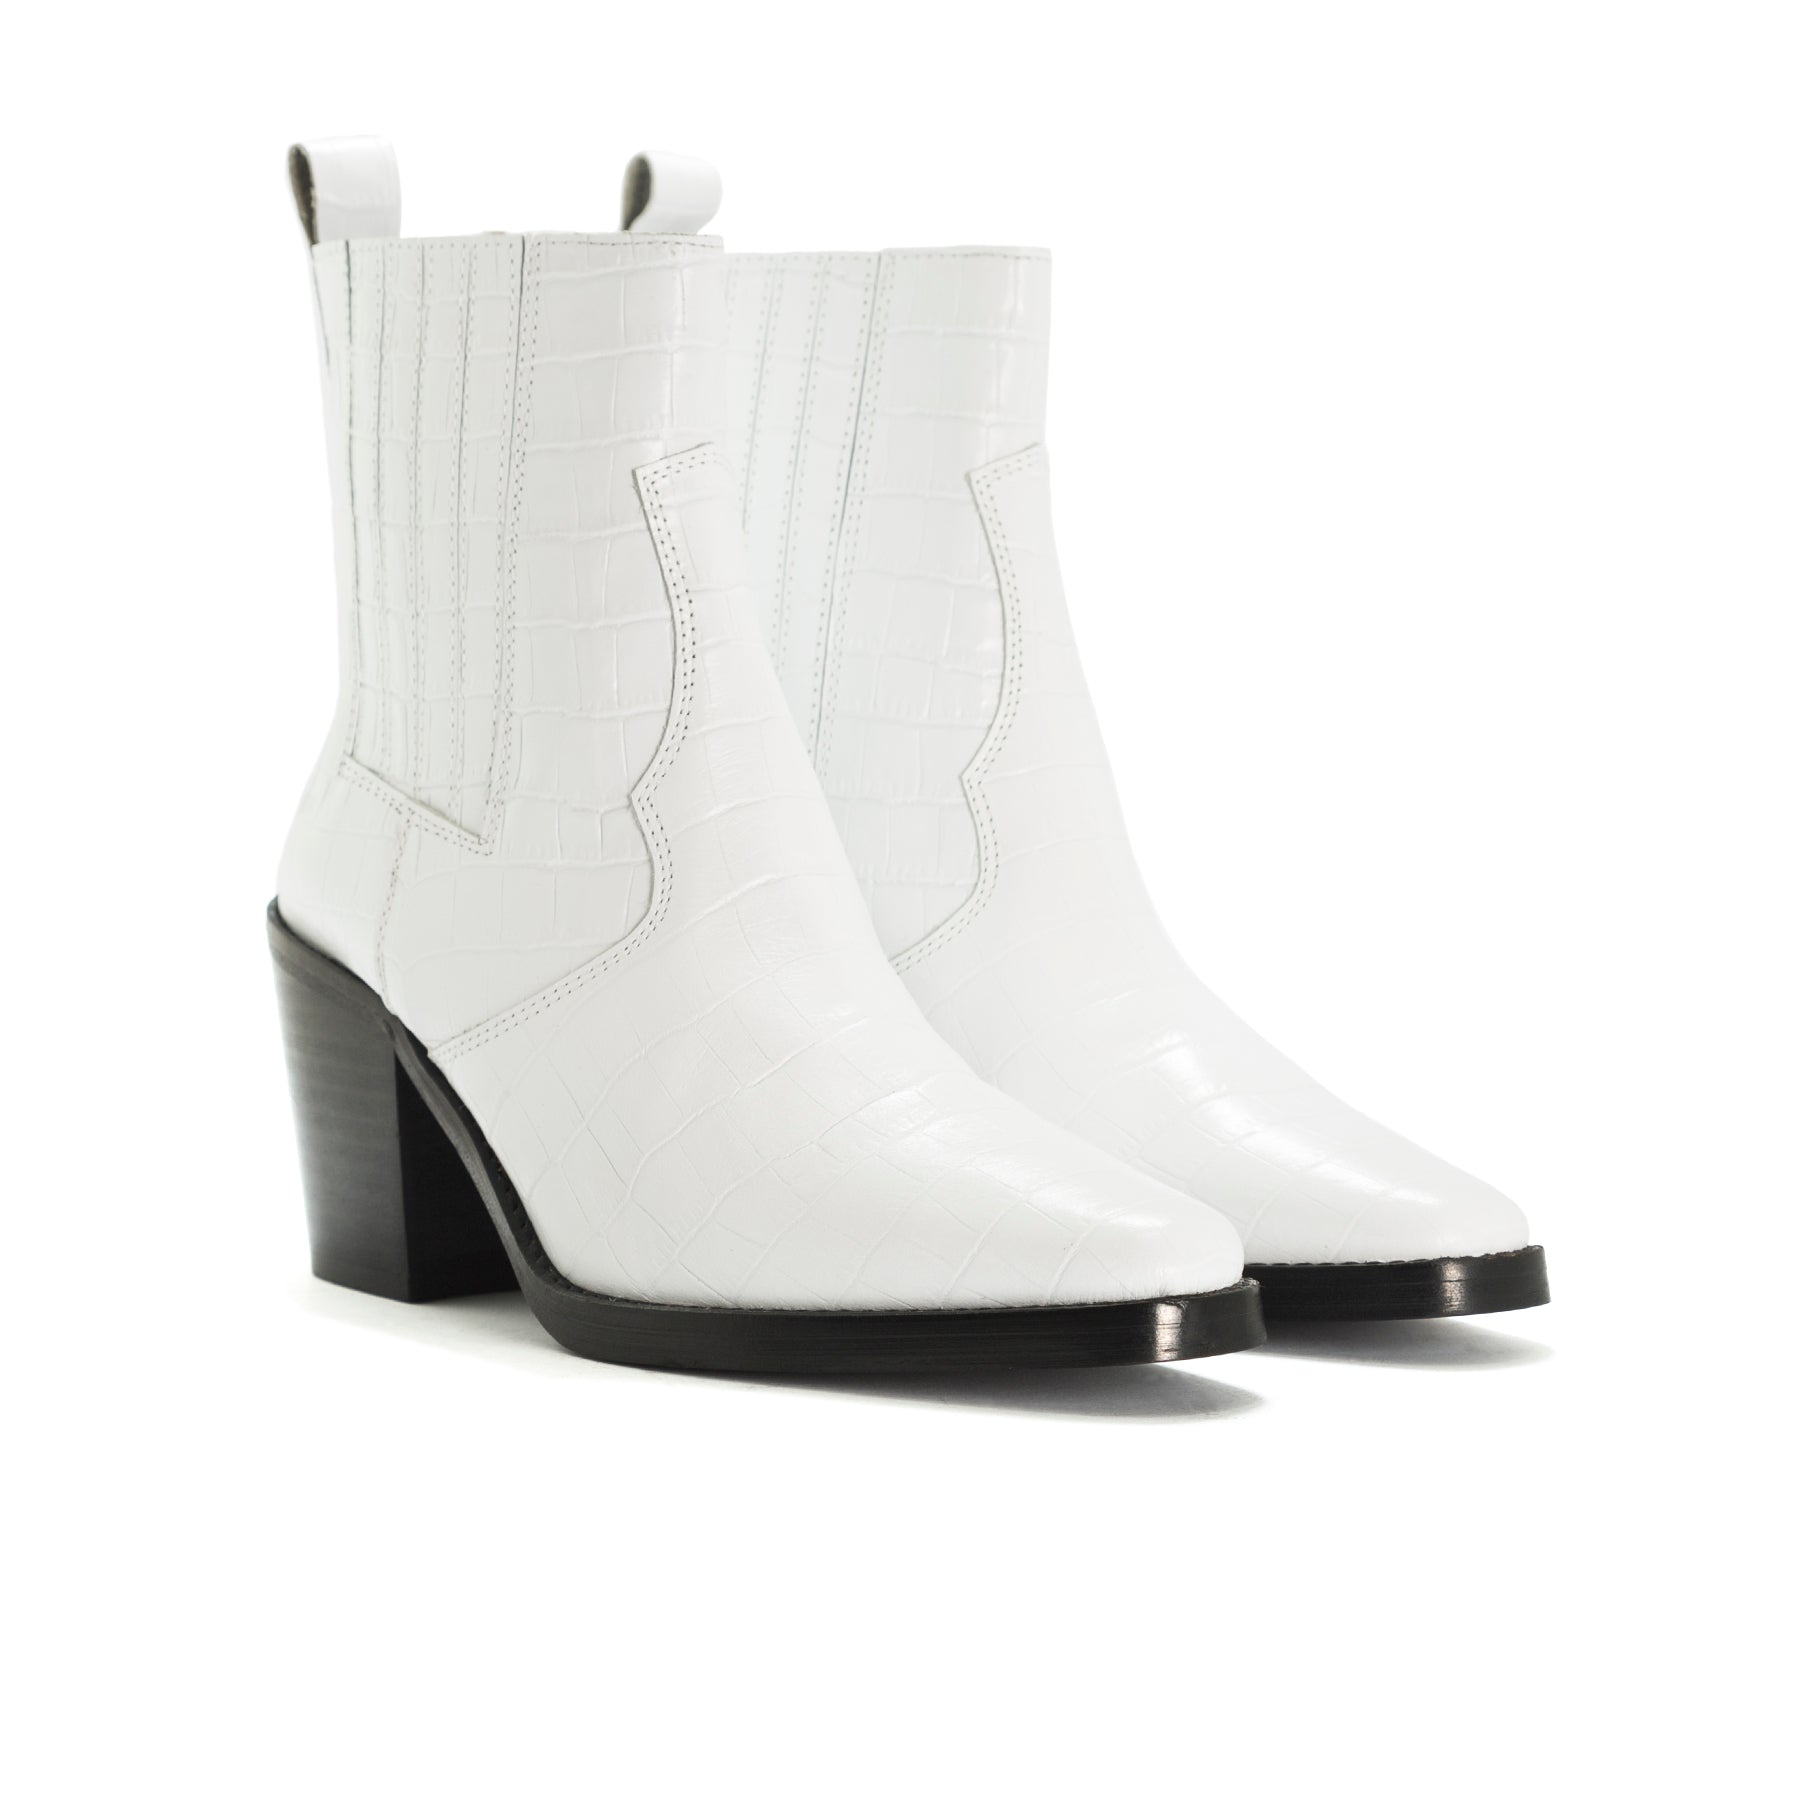 Valentina White Croco Ankle Boots